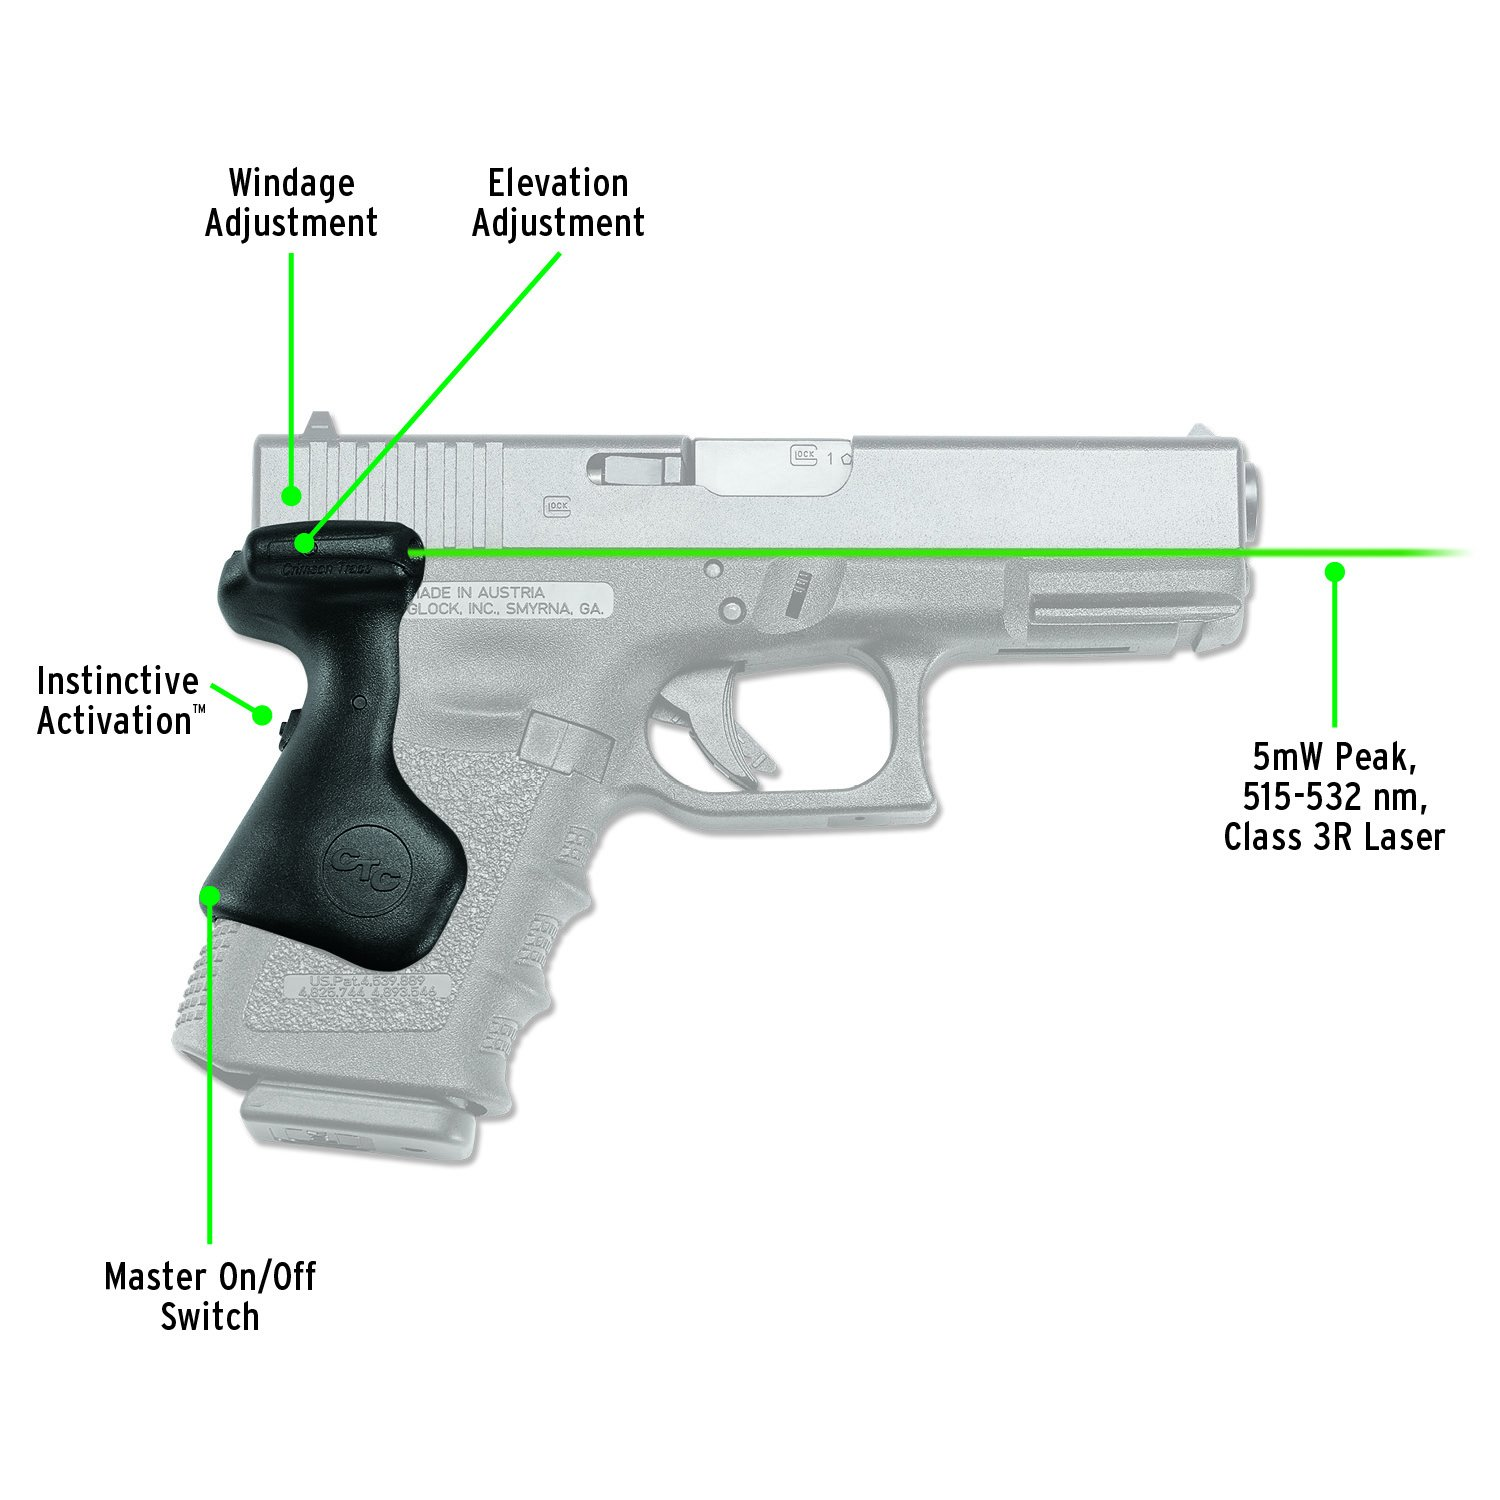 Crimson Trace LG-639G Lasergrips Green Laser Sight Grips for GLOCK Compact Pistols 19, 23 etc. by Crimson Trace